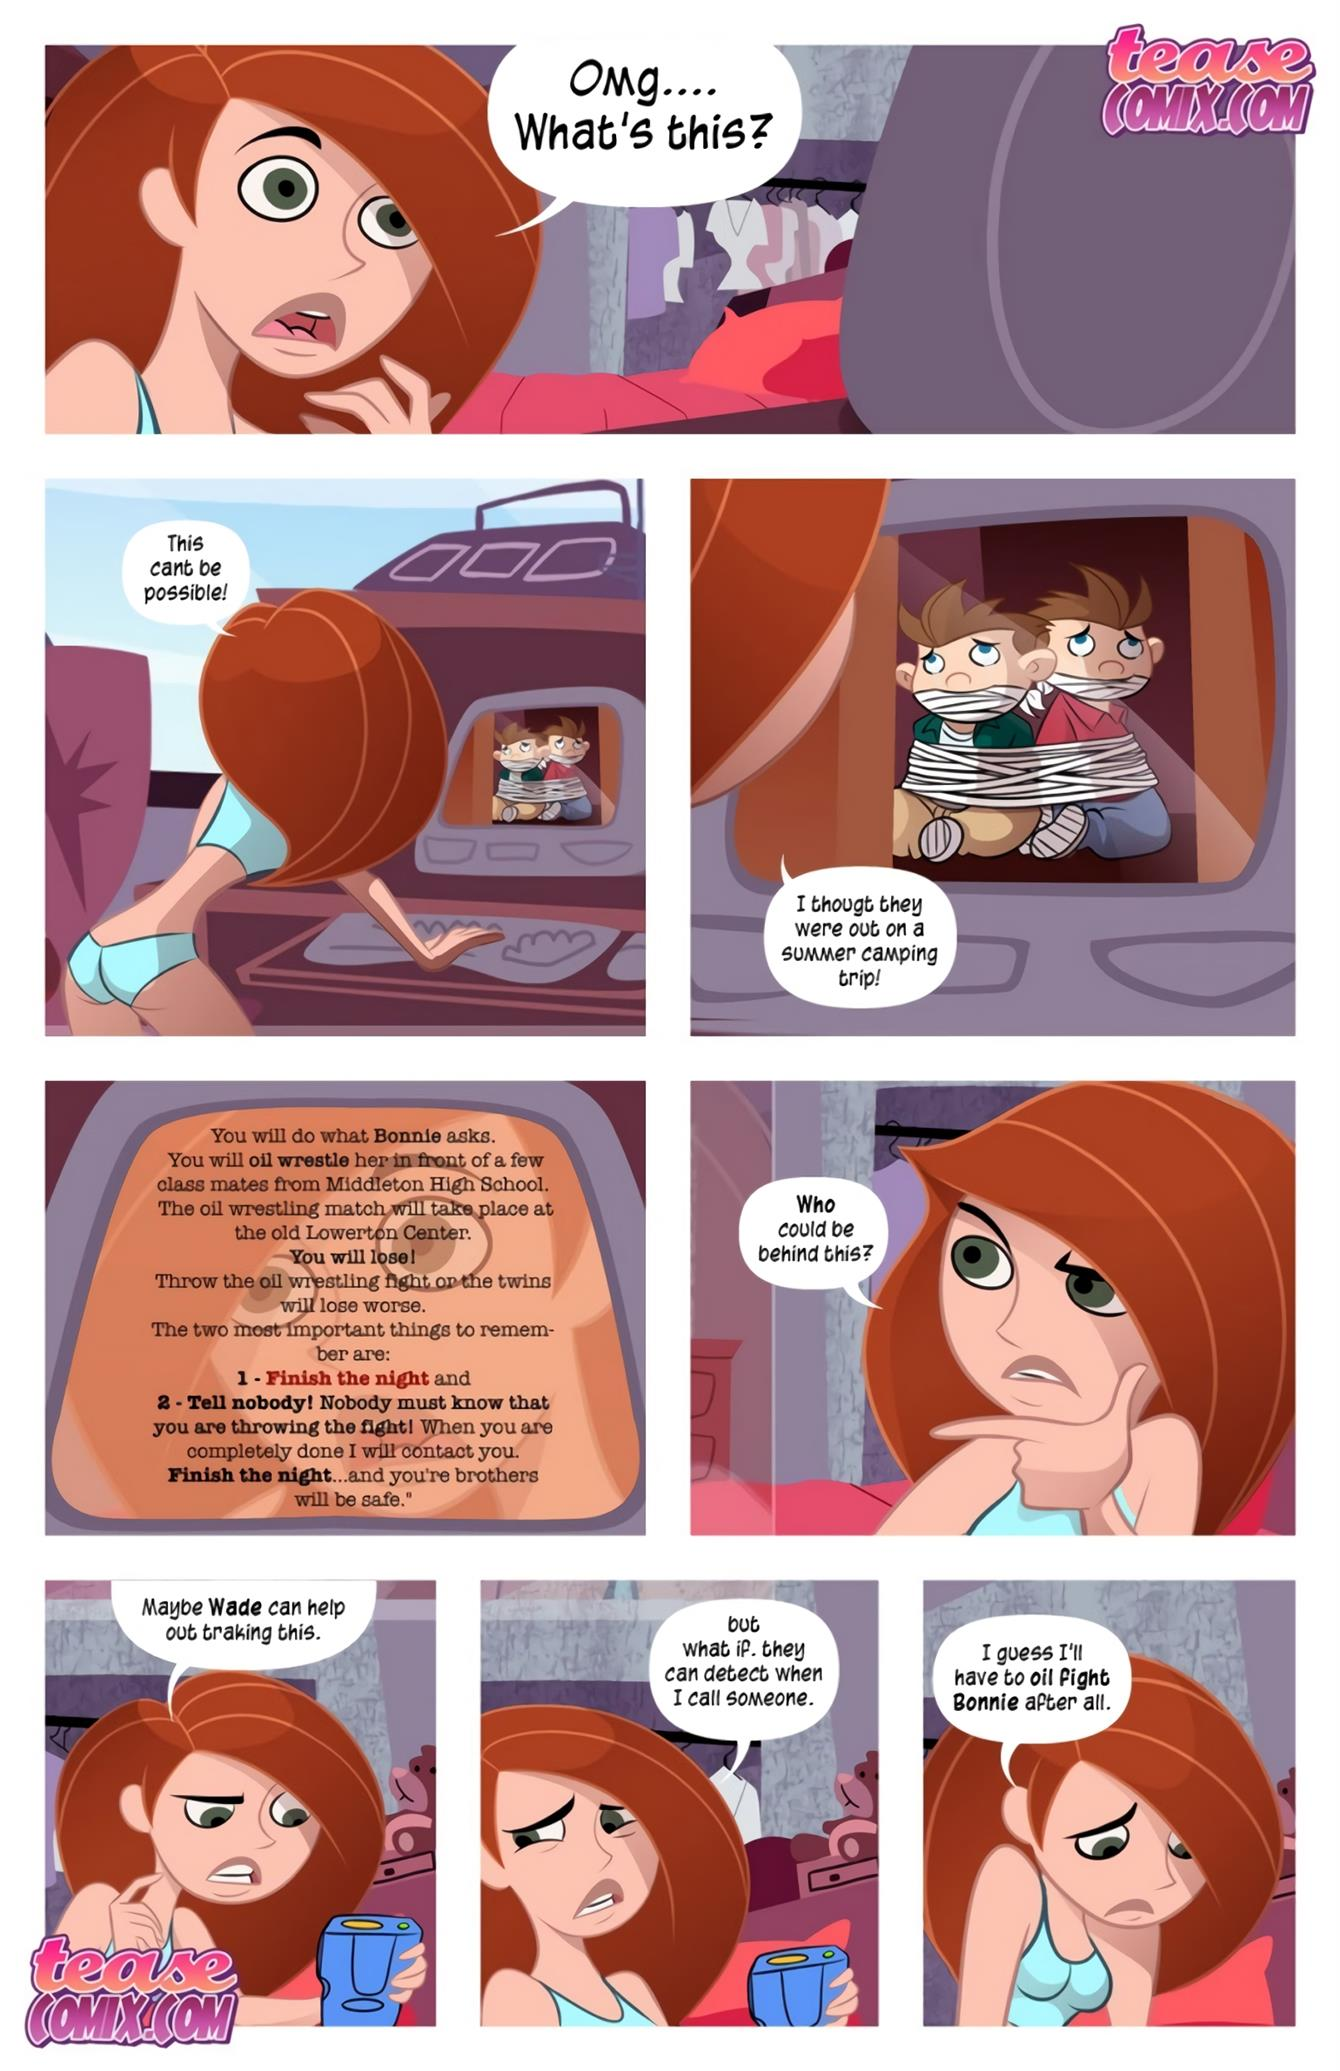 Cheer Fight (Kim Possible) [Tease Comix] - Foto 3